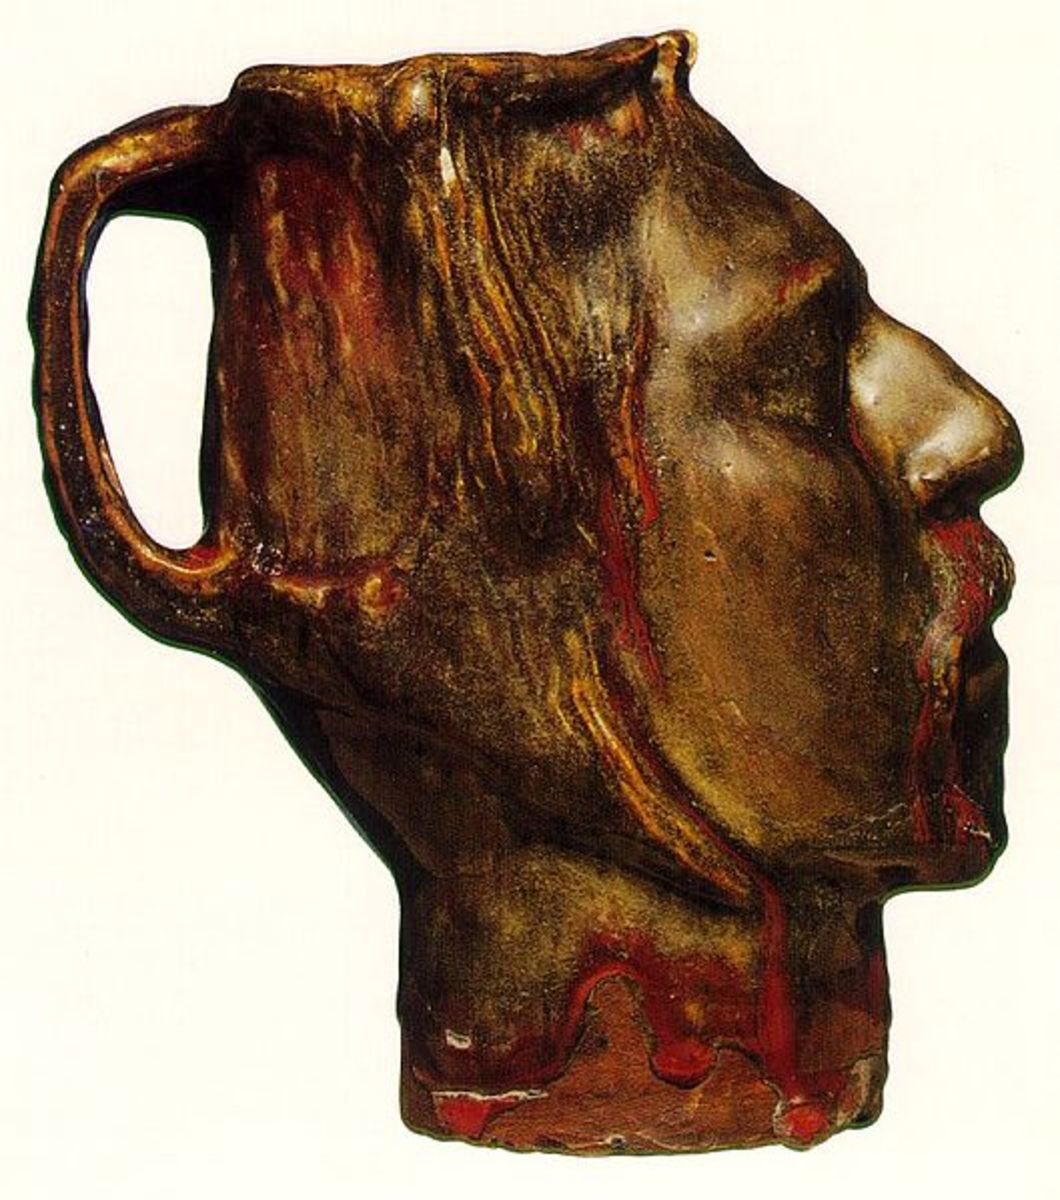 "Paul Gaugin's ""Jug In The Form Of A Head"" is a classic example of a face mug."